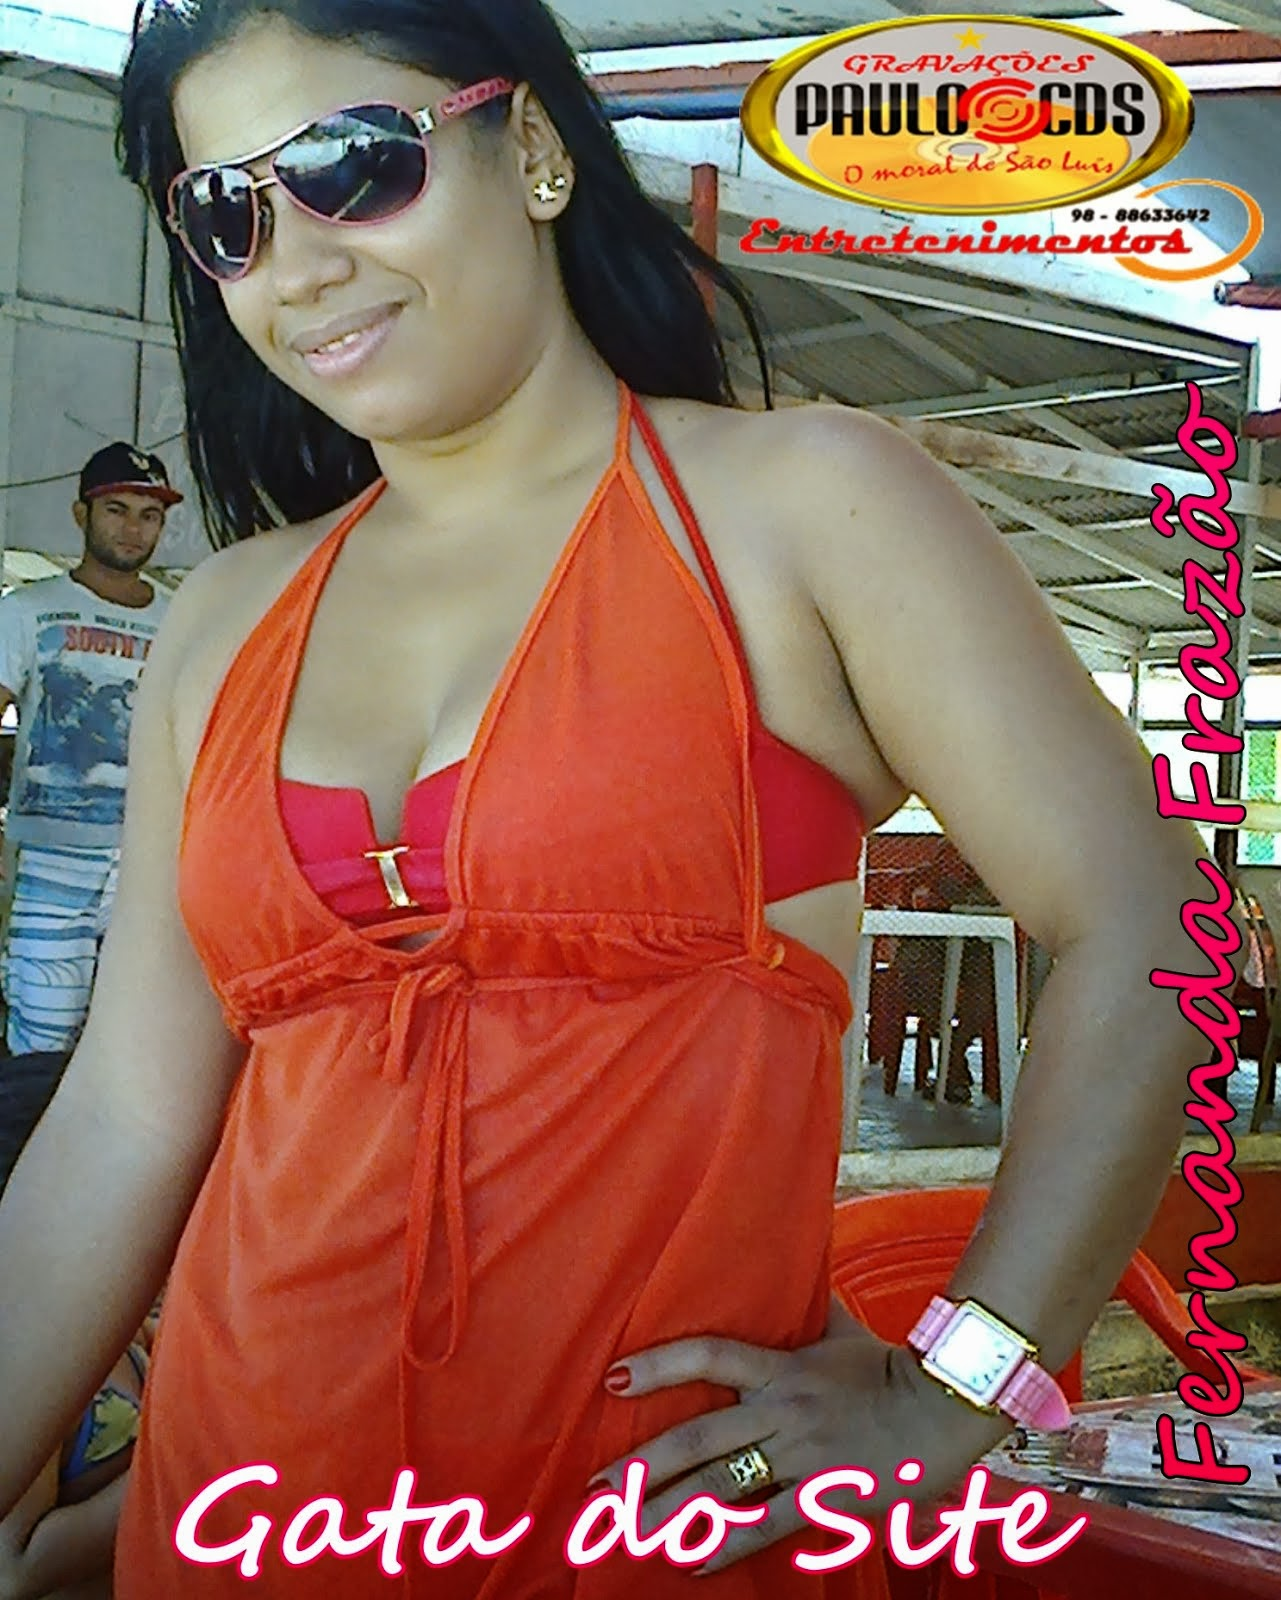 GATINHA TOP DO SITE